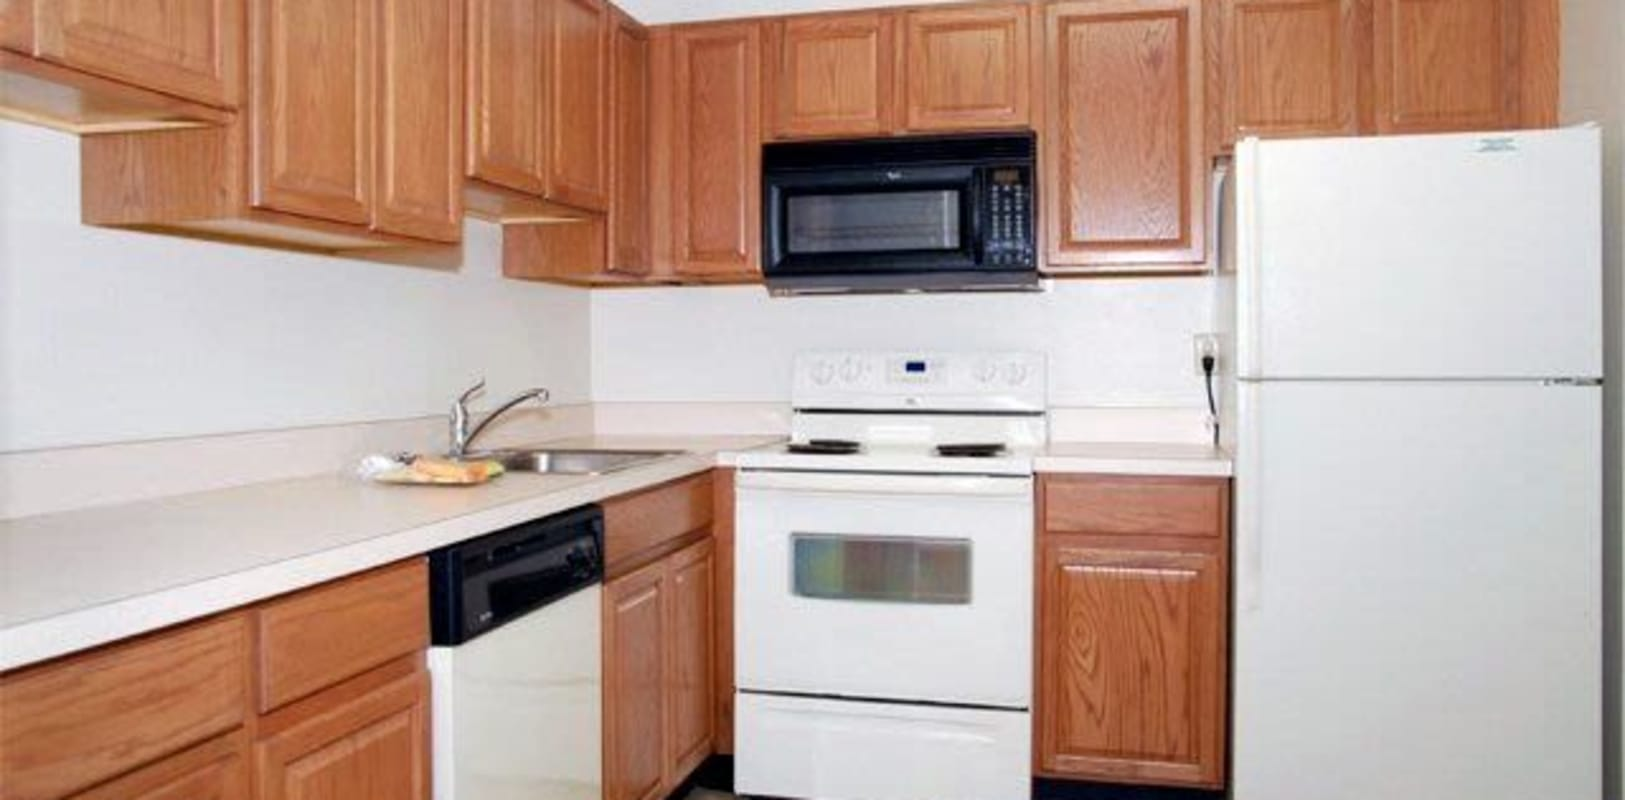 Lehigh Valley apartment kitchen with wood style cabinets in Whitehall, {location_state_name}}